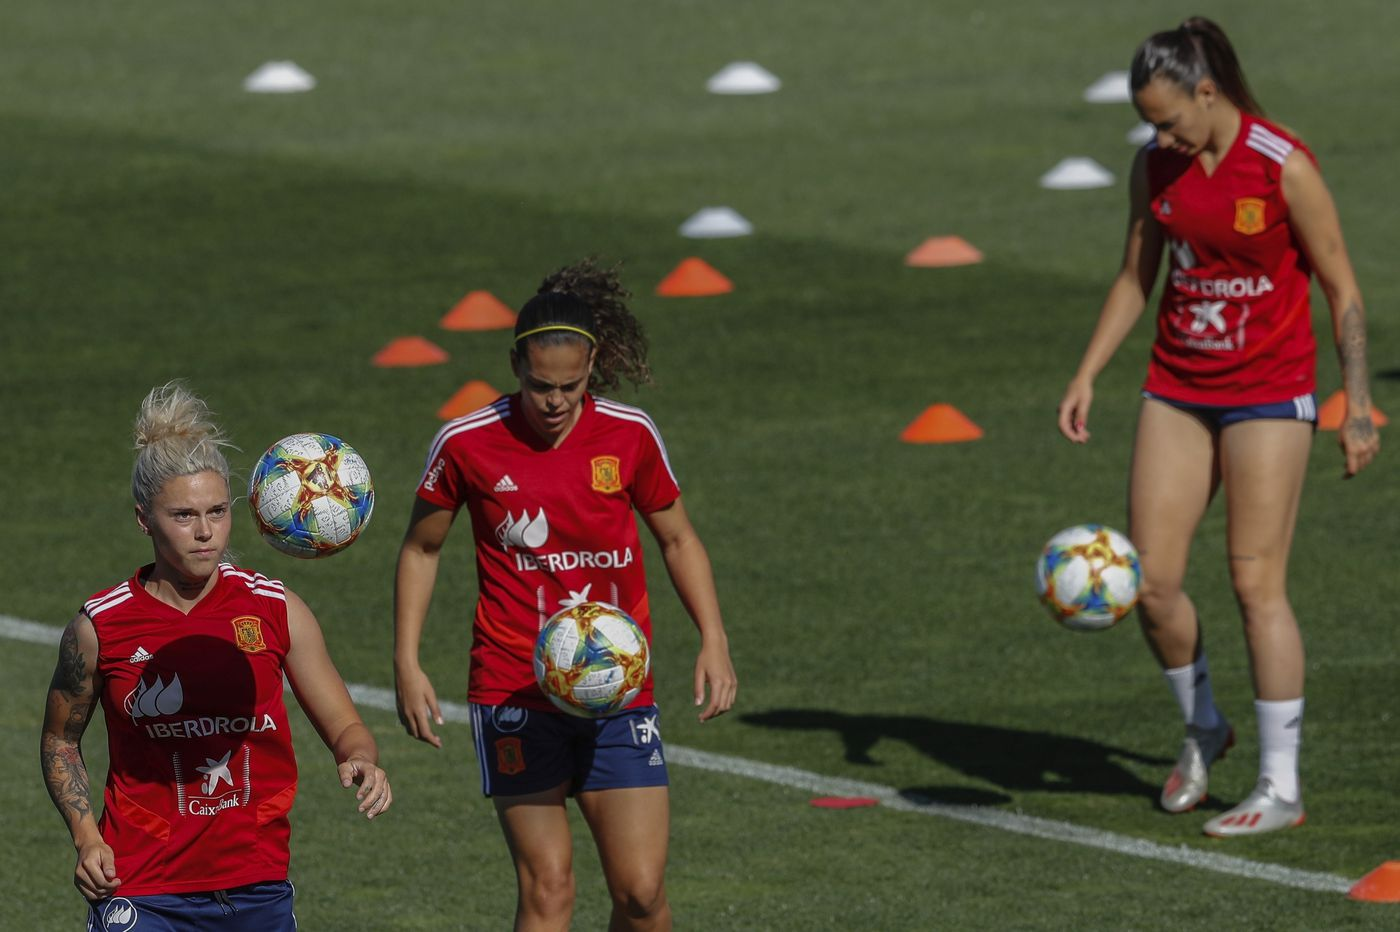 Fighting for rights, Spain women aim for landmark World Cup